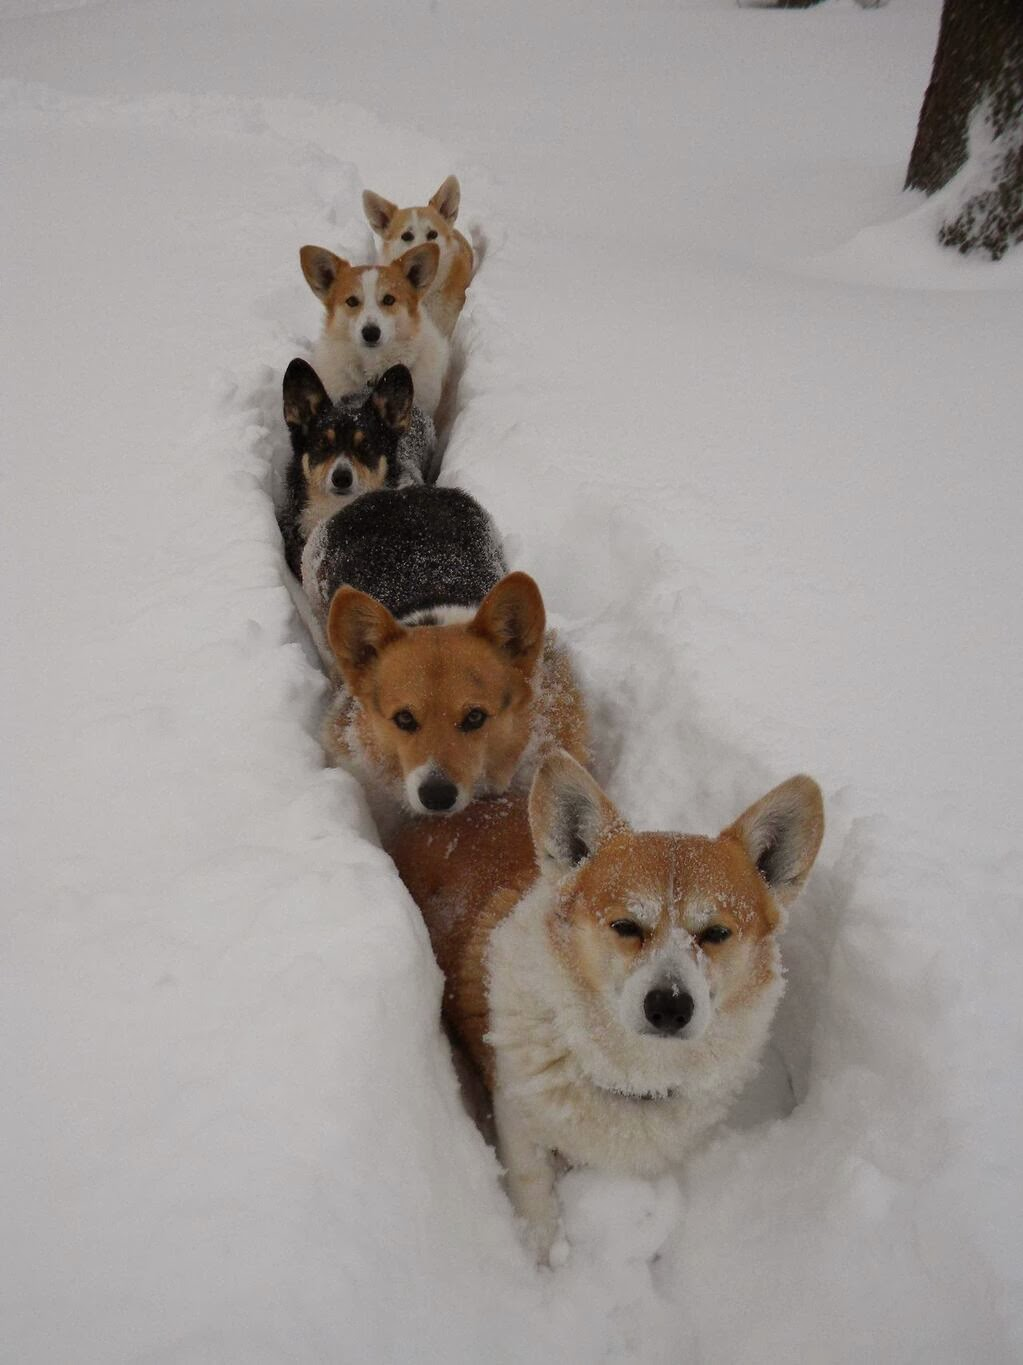 Cute dogs - part 4 (50 pics), dog pictures, pack of corgis playing in snow